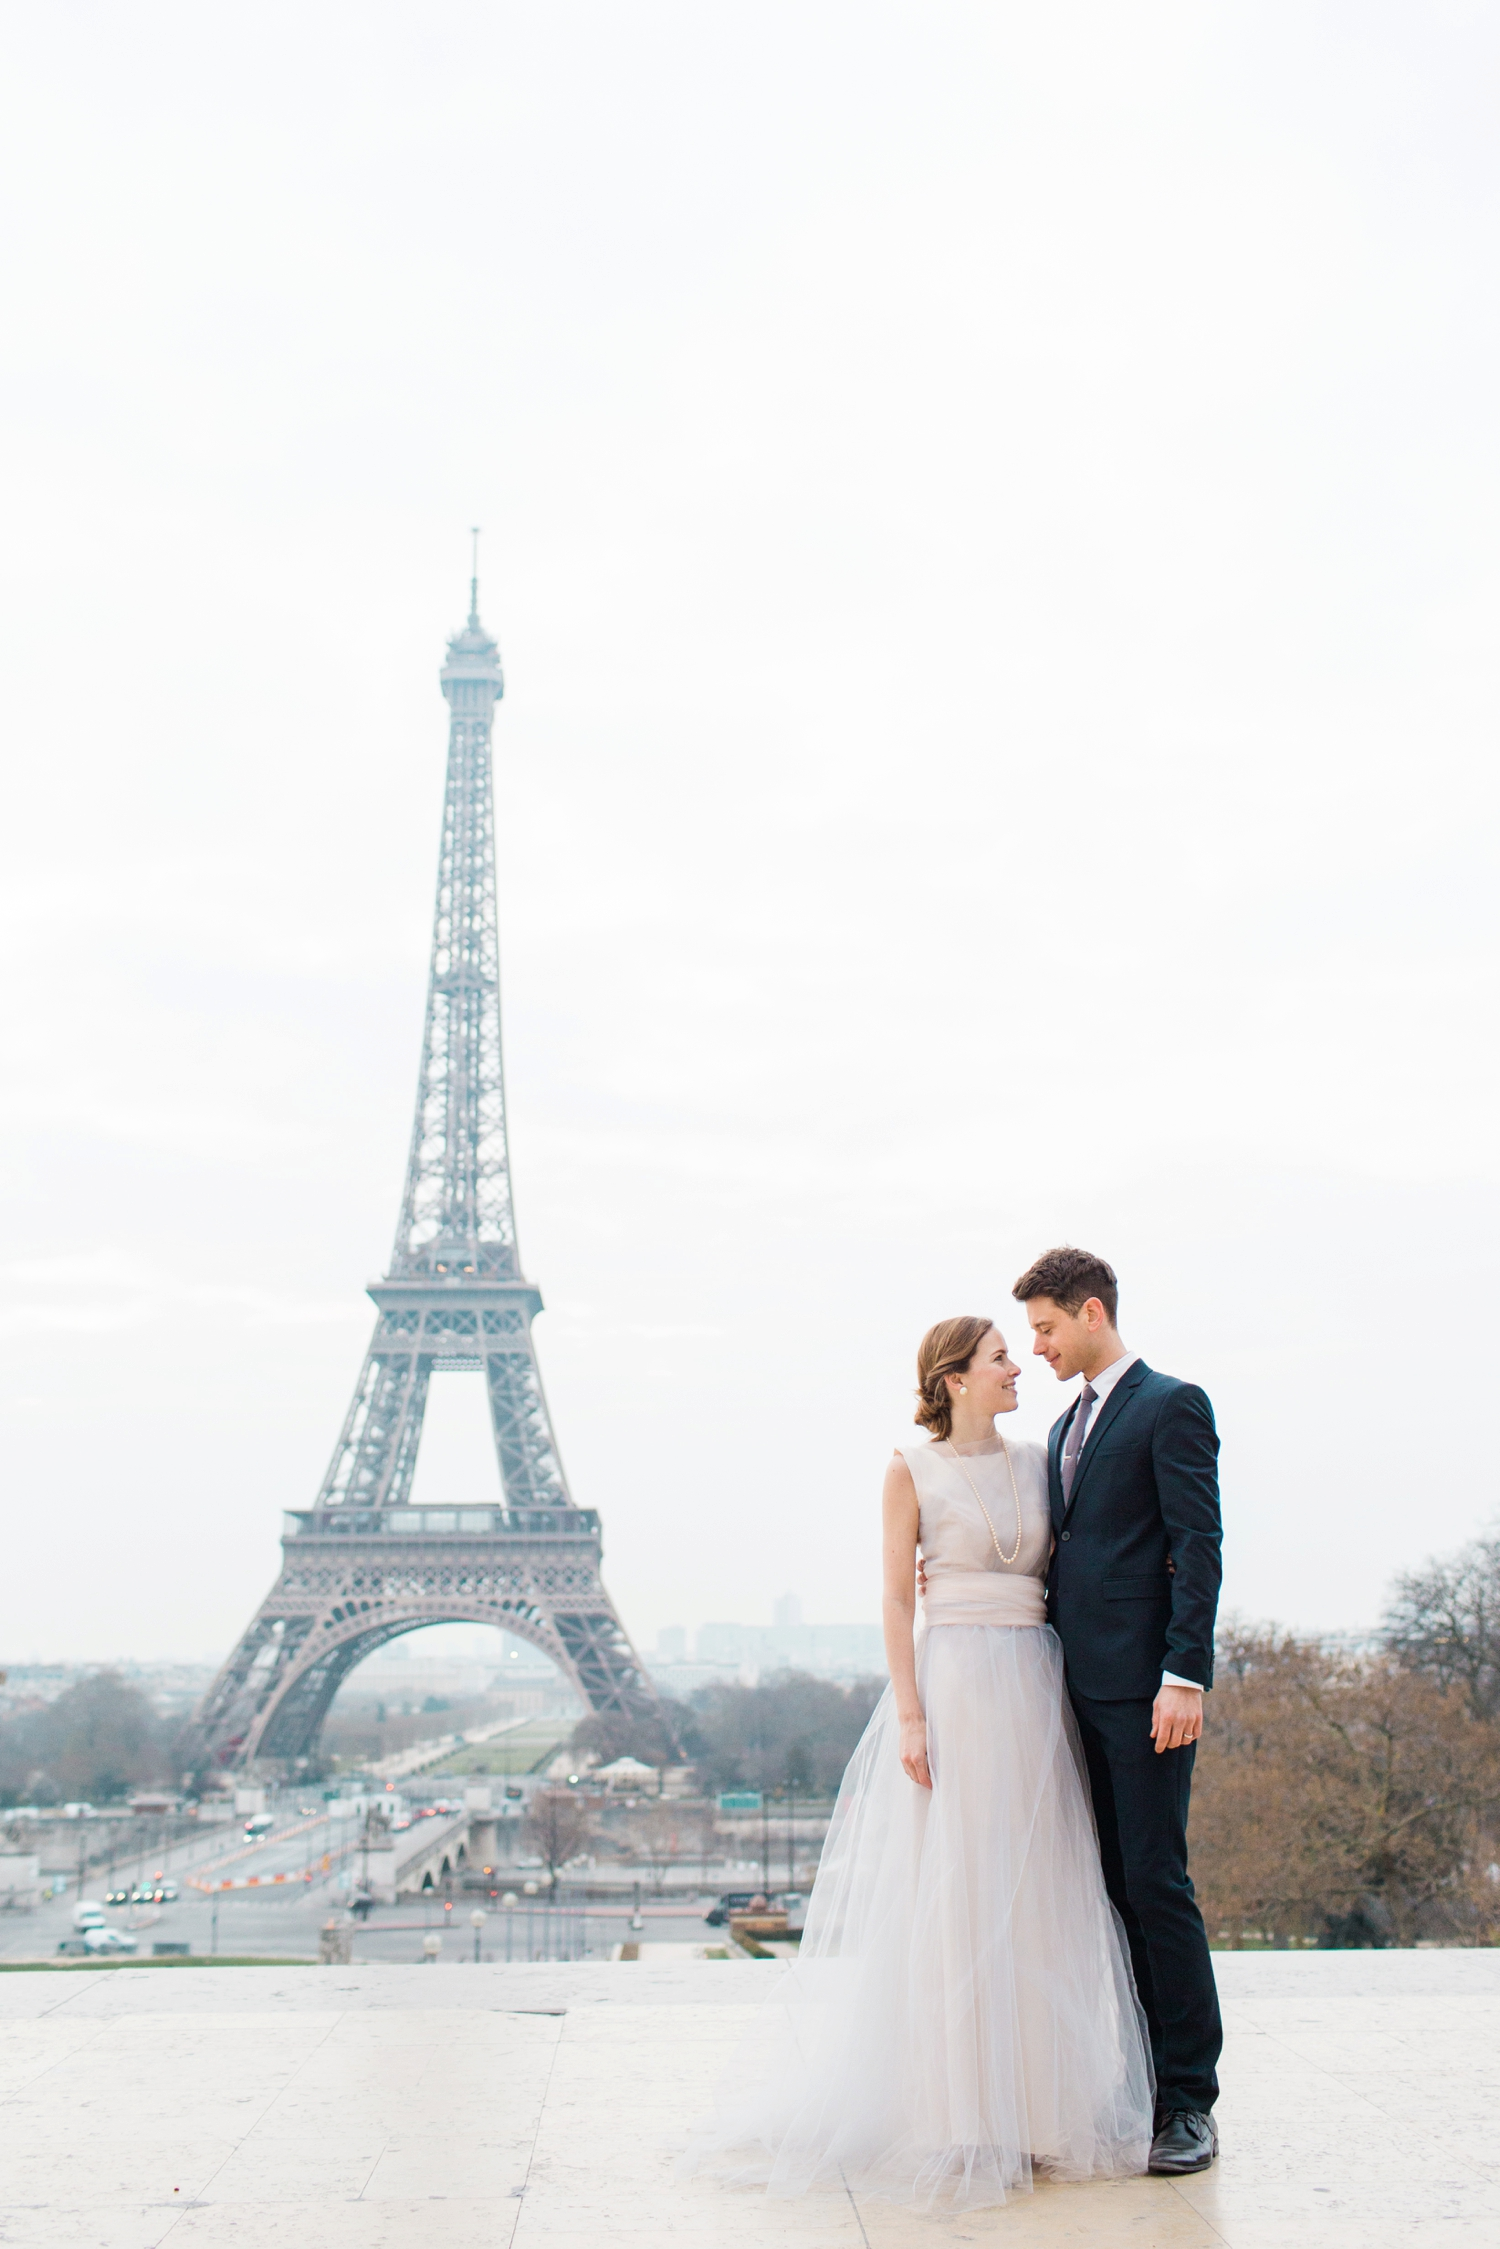 Paris-France-Wedding-Photography-Chloe-Luka-Photography_7649.jpg